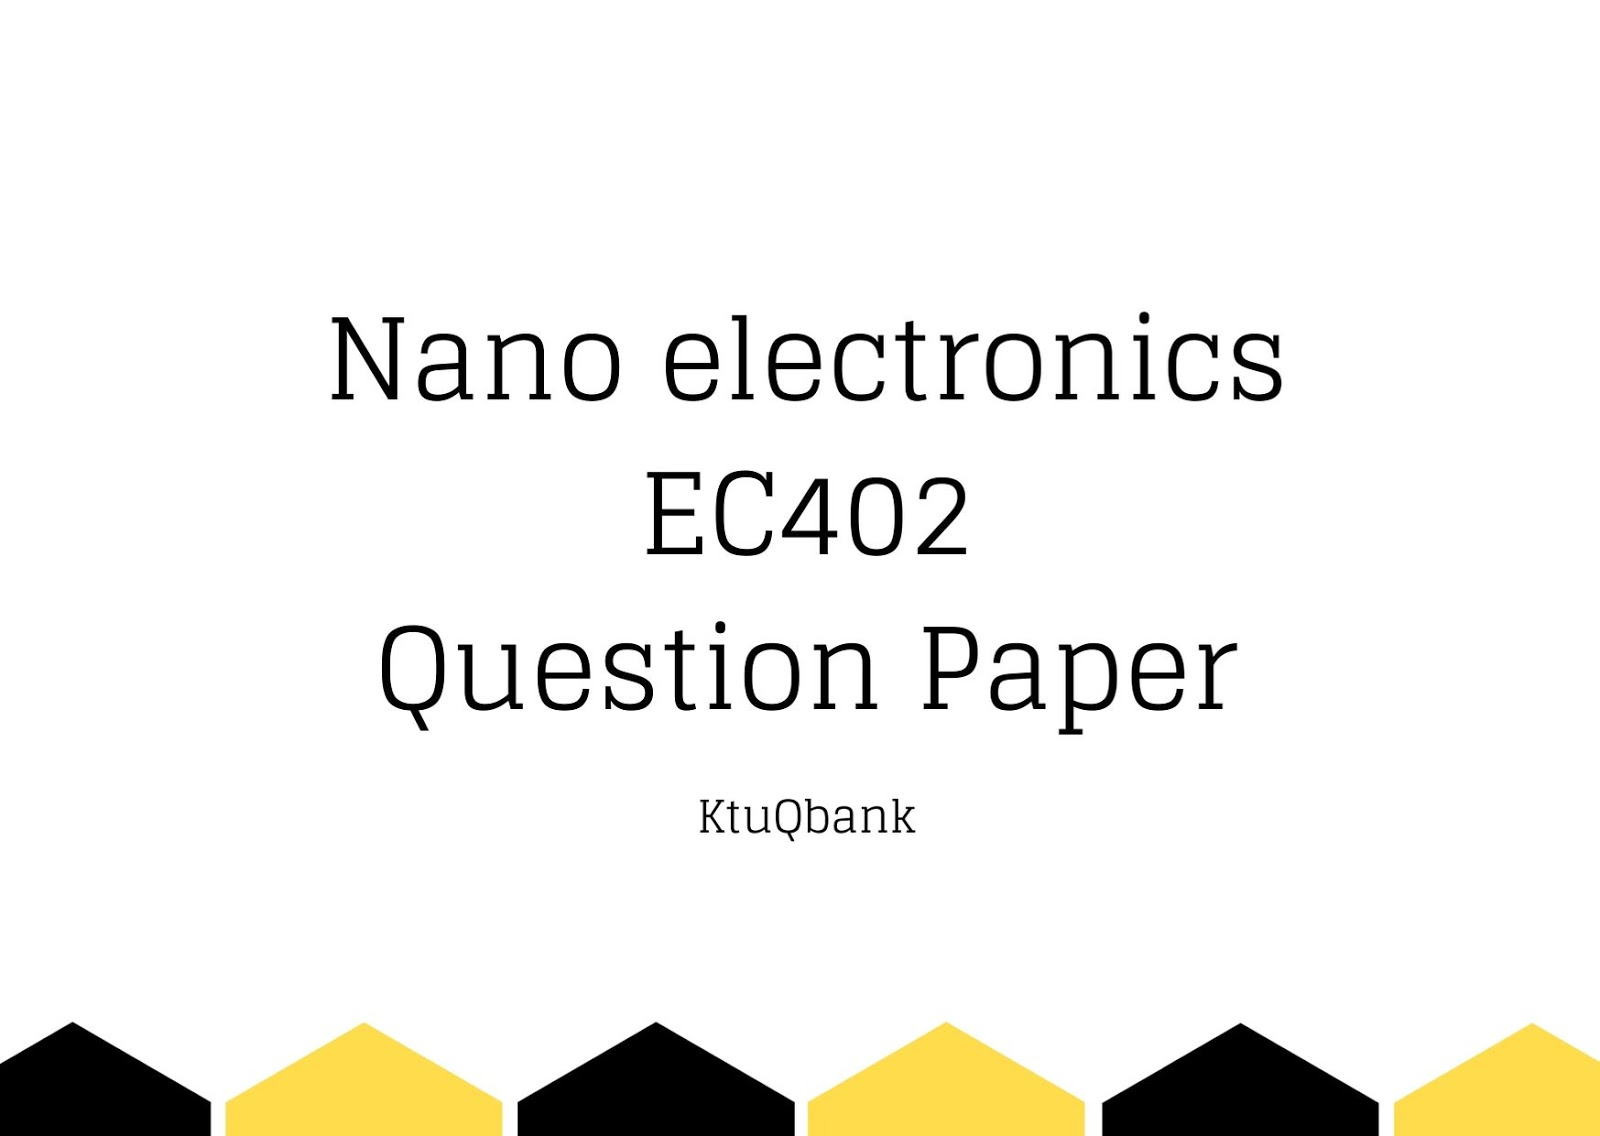 NANOELECTRONICS | EC402 | Question Papers (2015 batch)